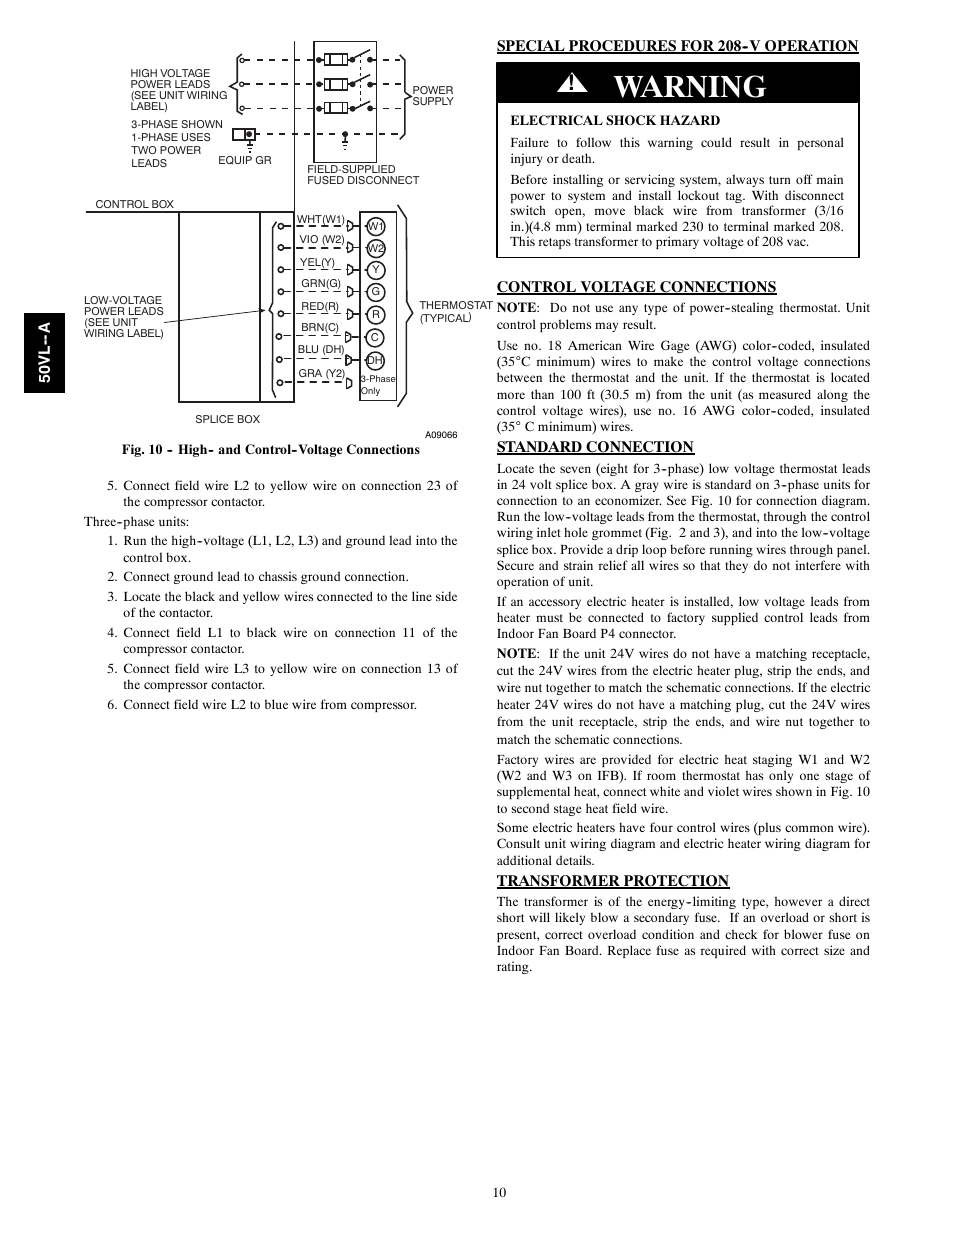 Warning Carrier 50vl A User Manual Page 10 30 3 Phase Electric Heating Wiring Diagram